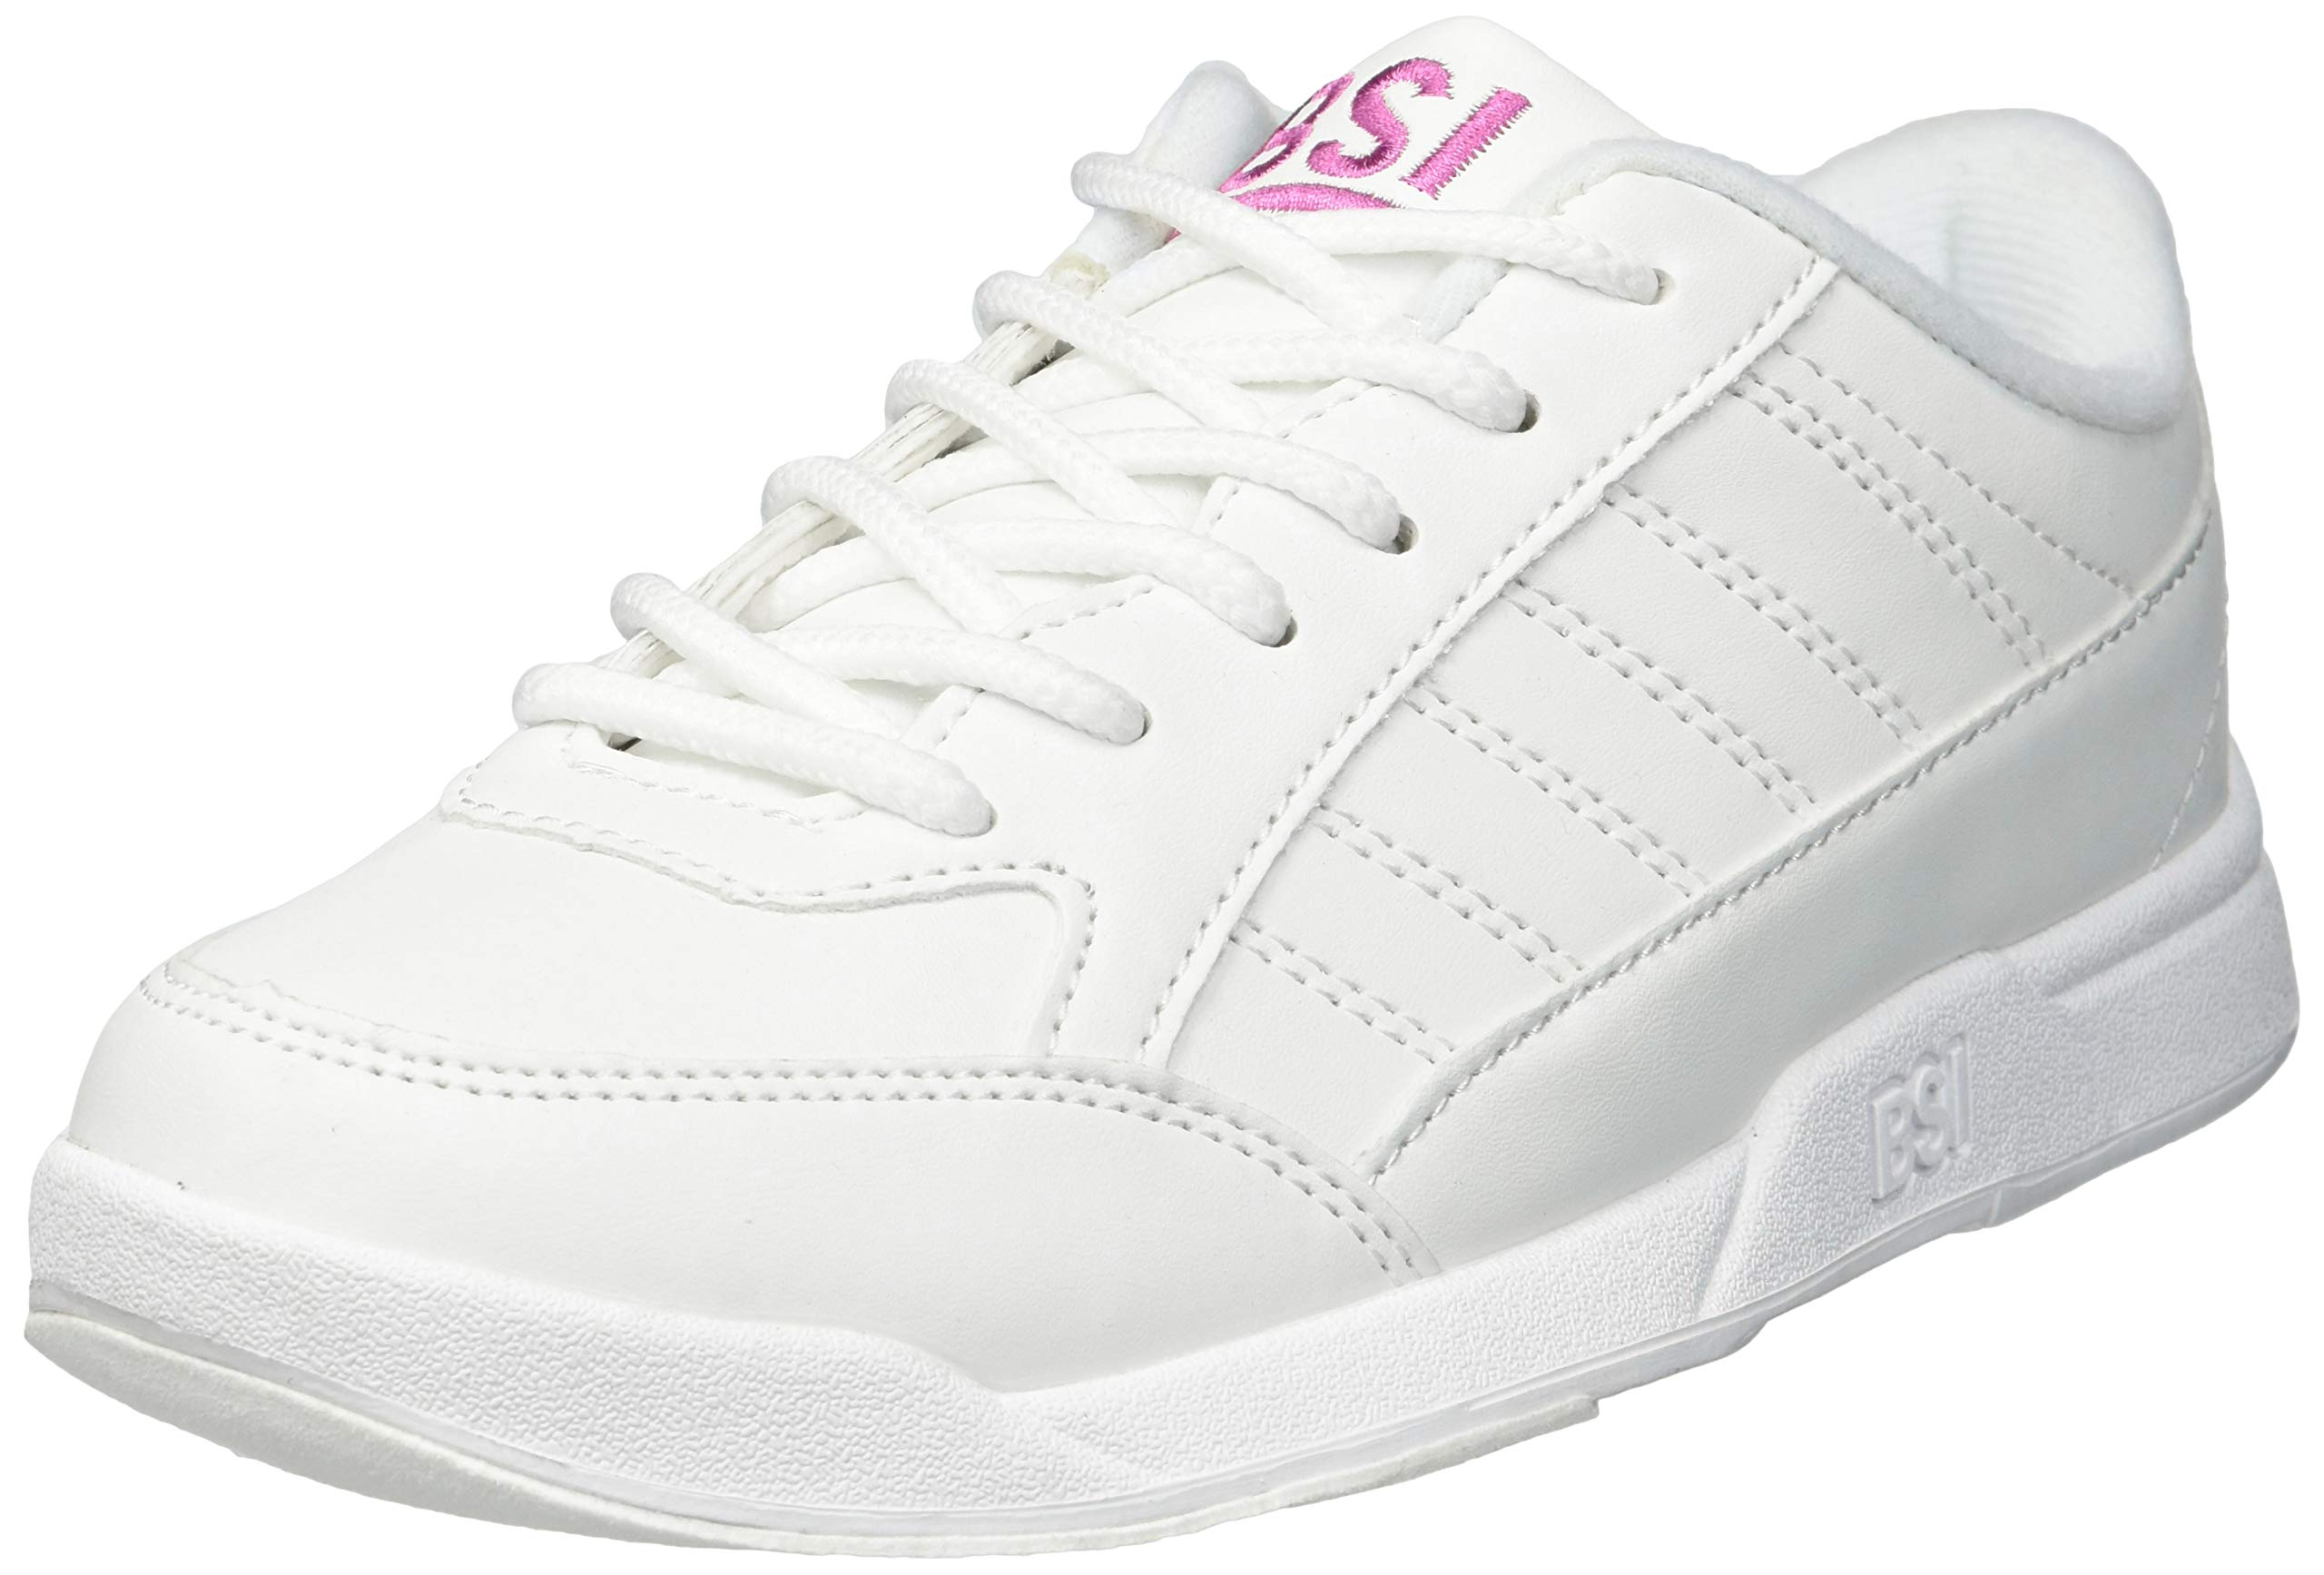 BSI Girl's Basic #432 Bowling Shoes, White, Size 1.0 by BSI